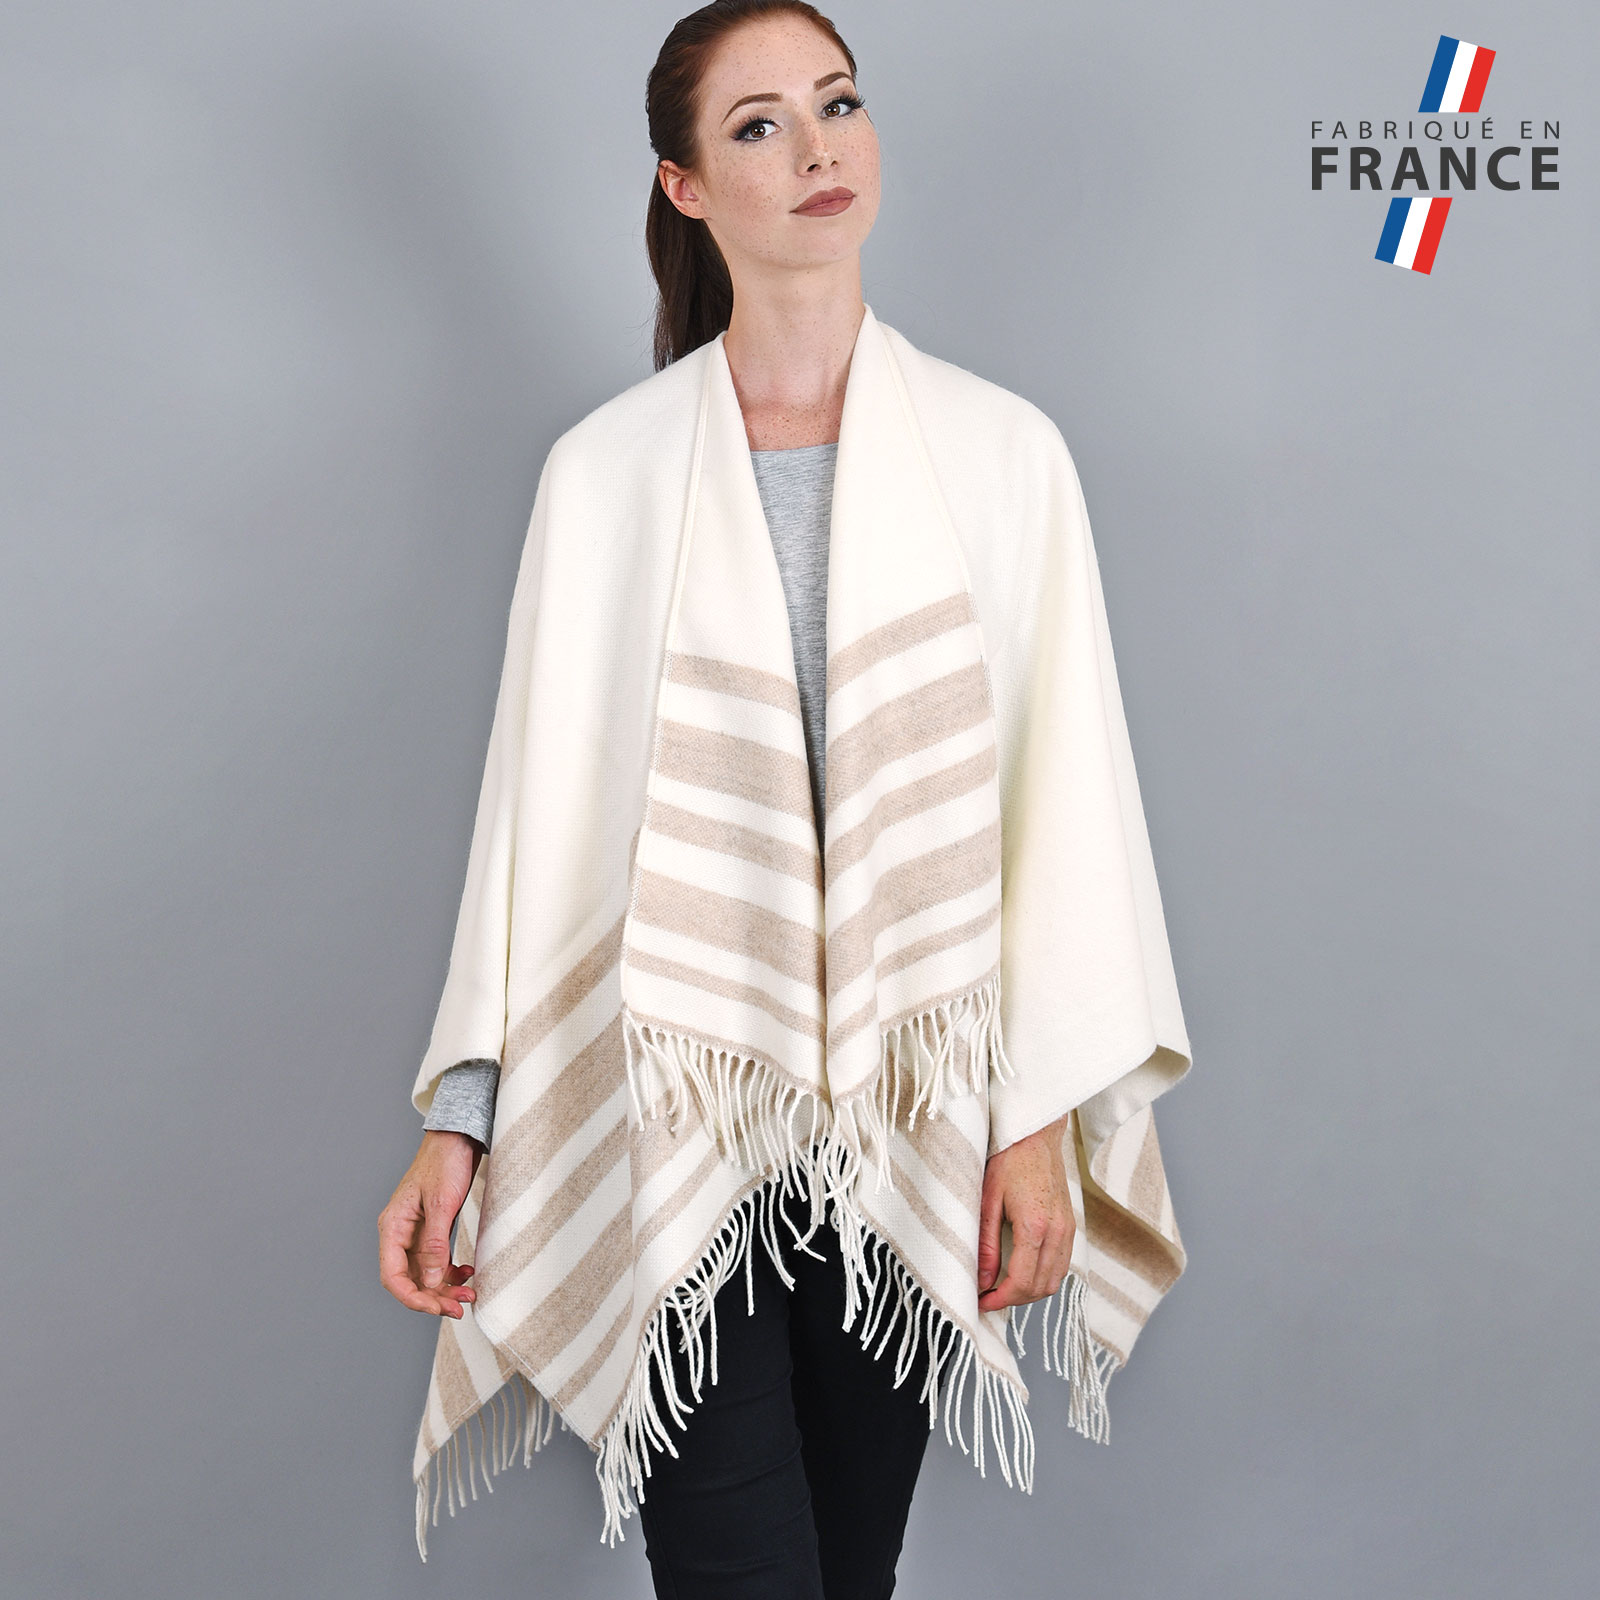 AT-03212-VF16-1-LB_FR-poncho-franges-a-rayures-blanc-beige